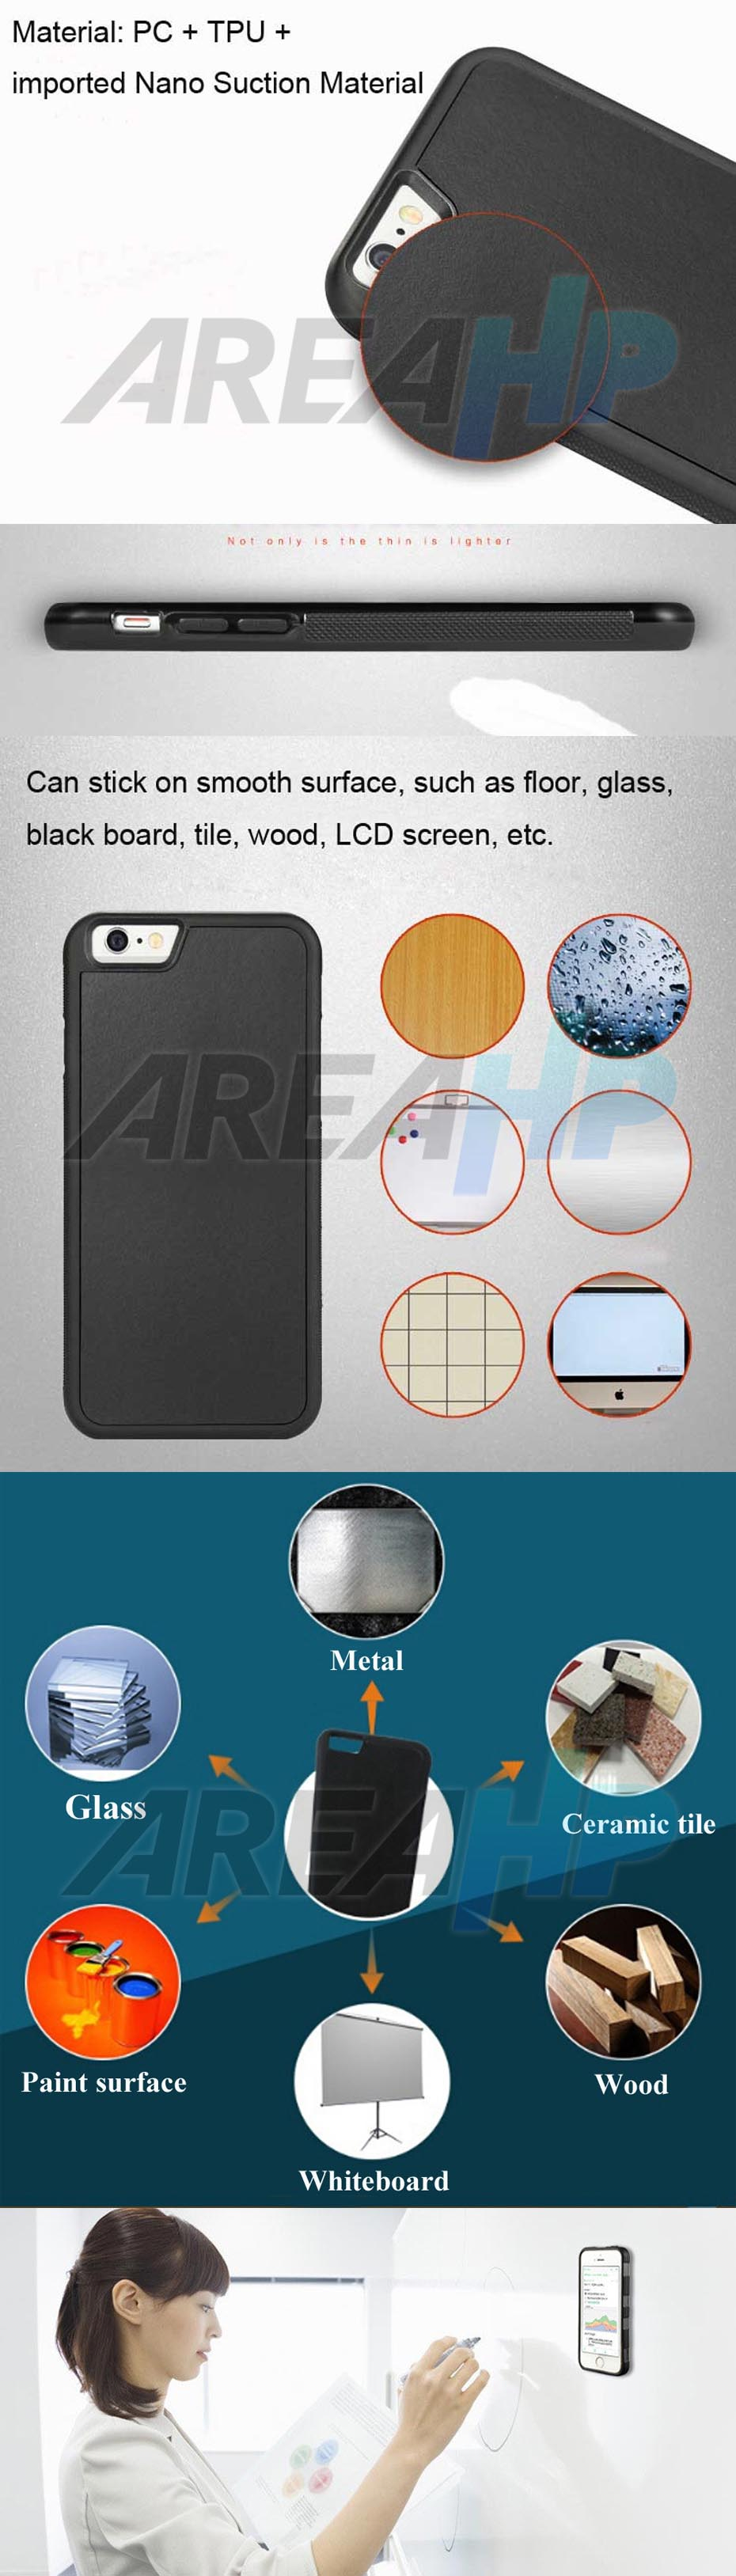 Anti Gravity Hard Case for iPhone 6 Plus +, 6S Plus + Overview